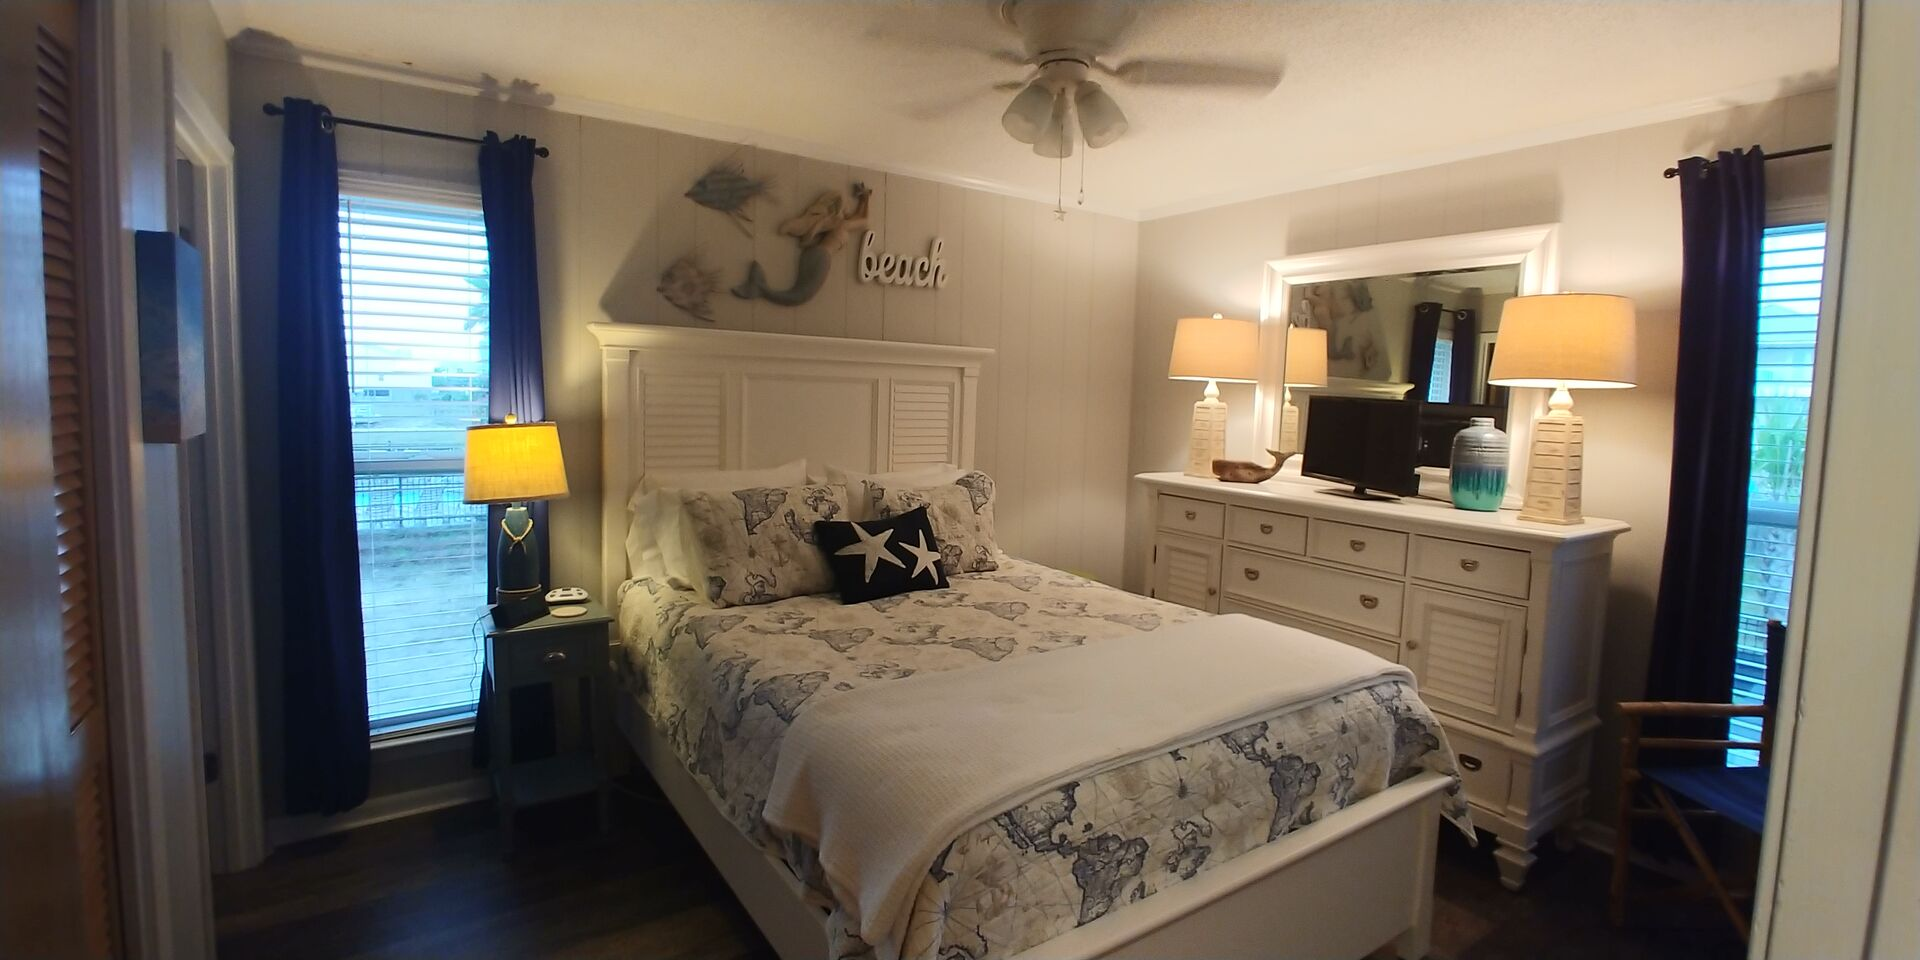 Large Bed, Drawer Dresser, Mirror, Lamps, and Ceiling Fan.